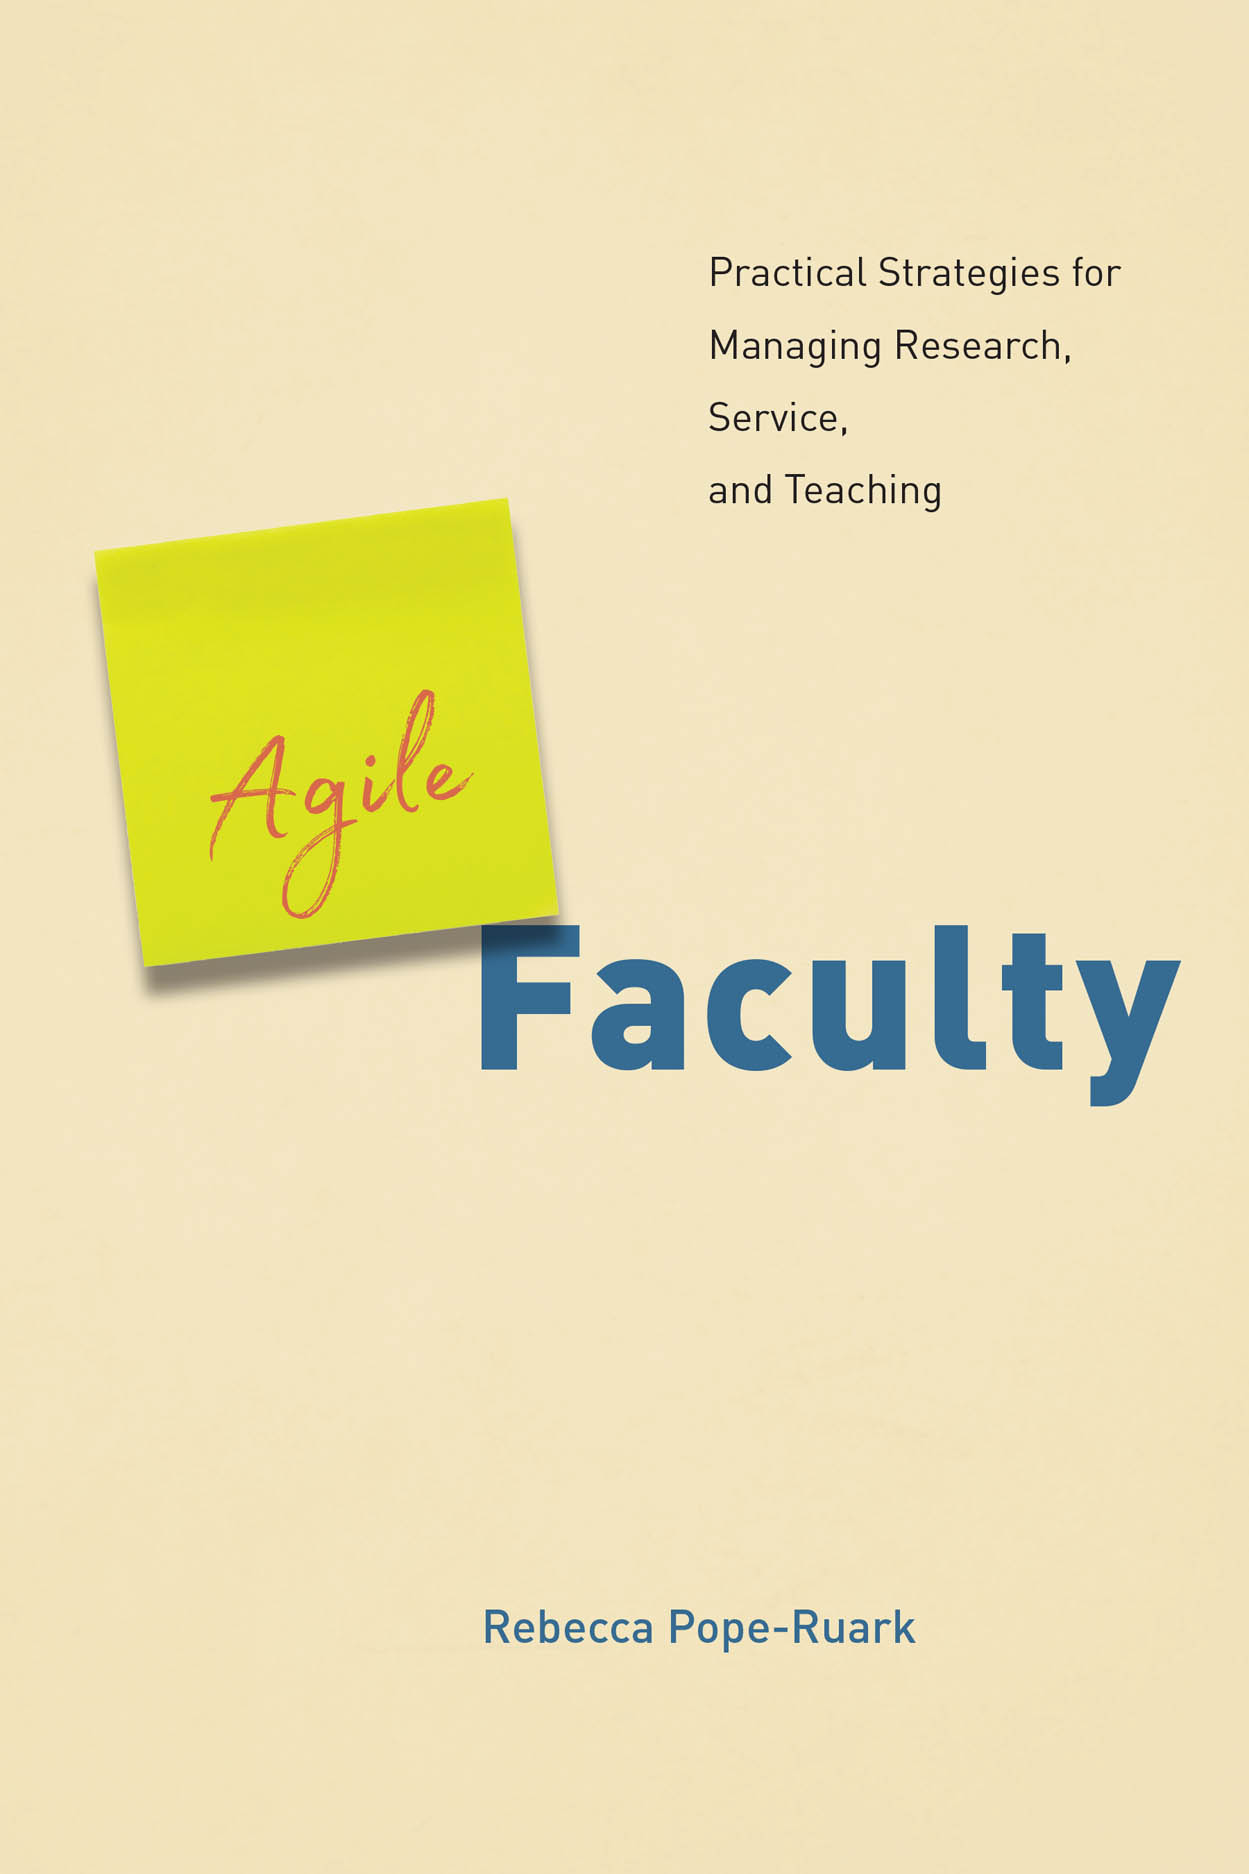 Agile Faculty: Practical Strategies for Managing Research, Service, and Teaching